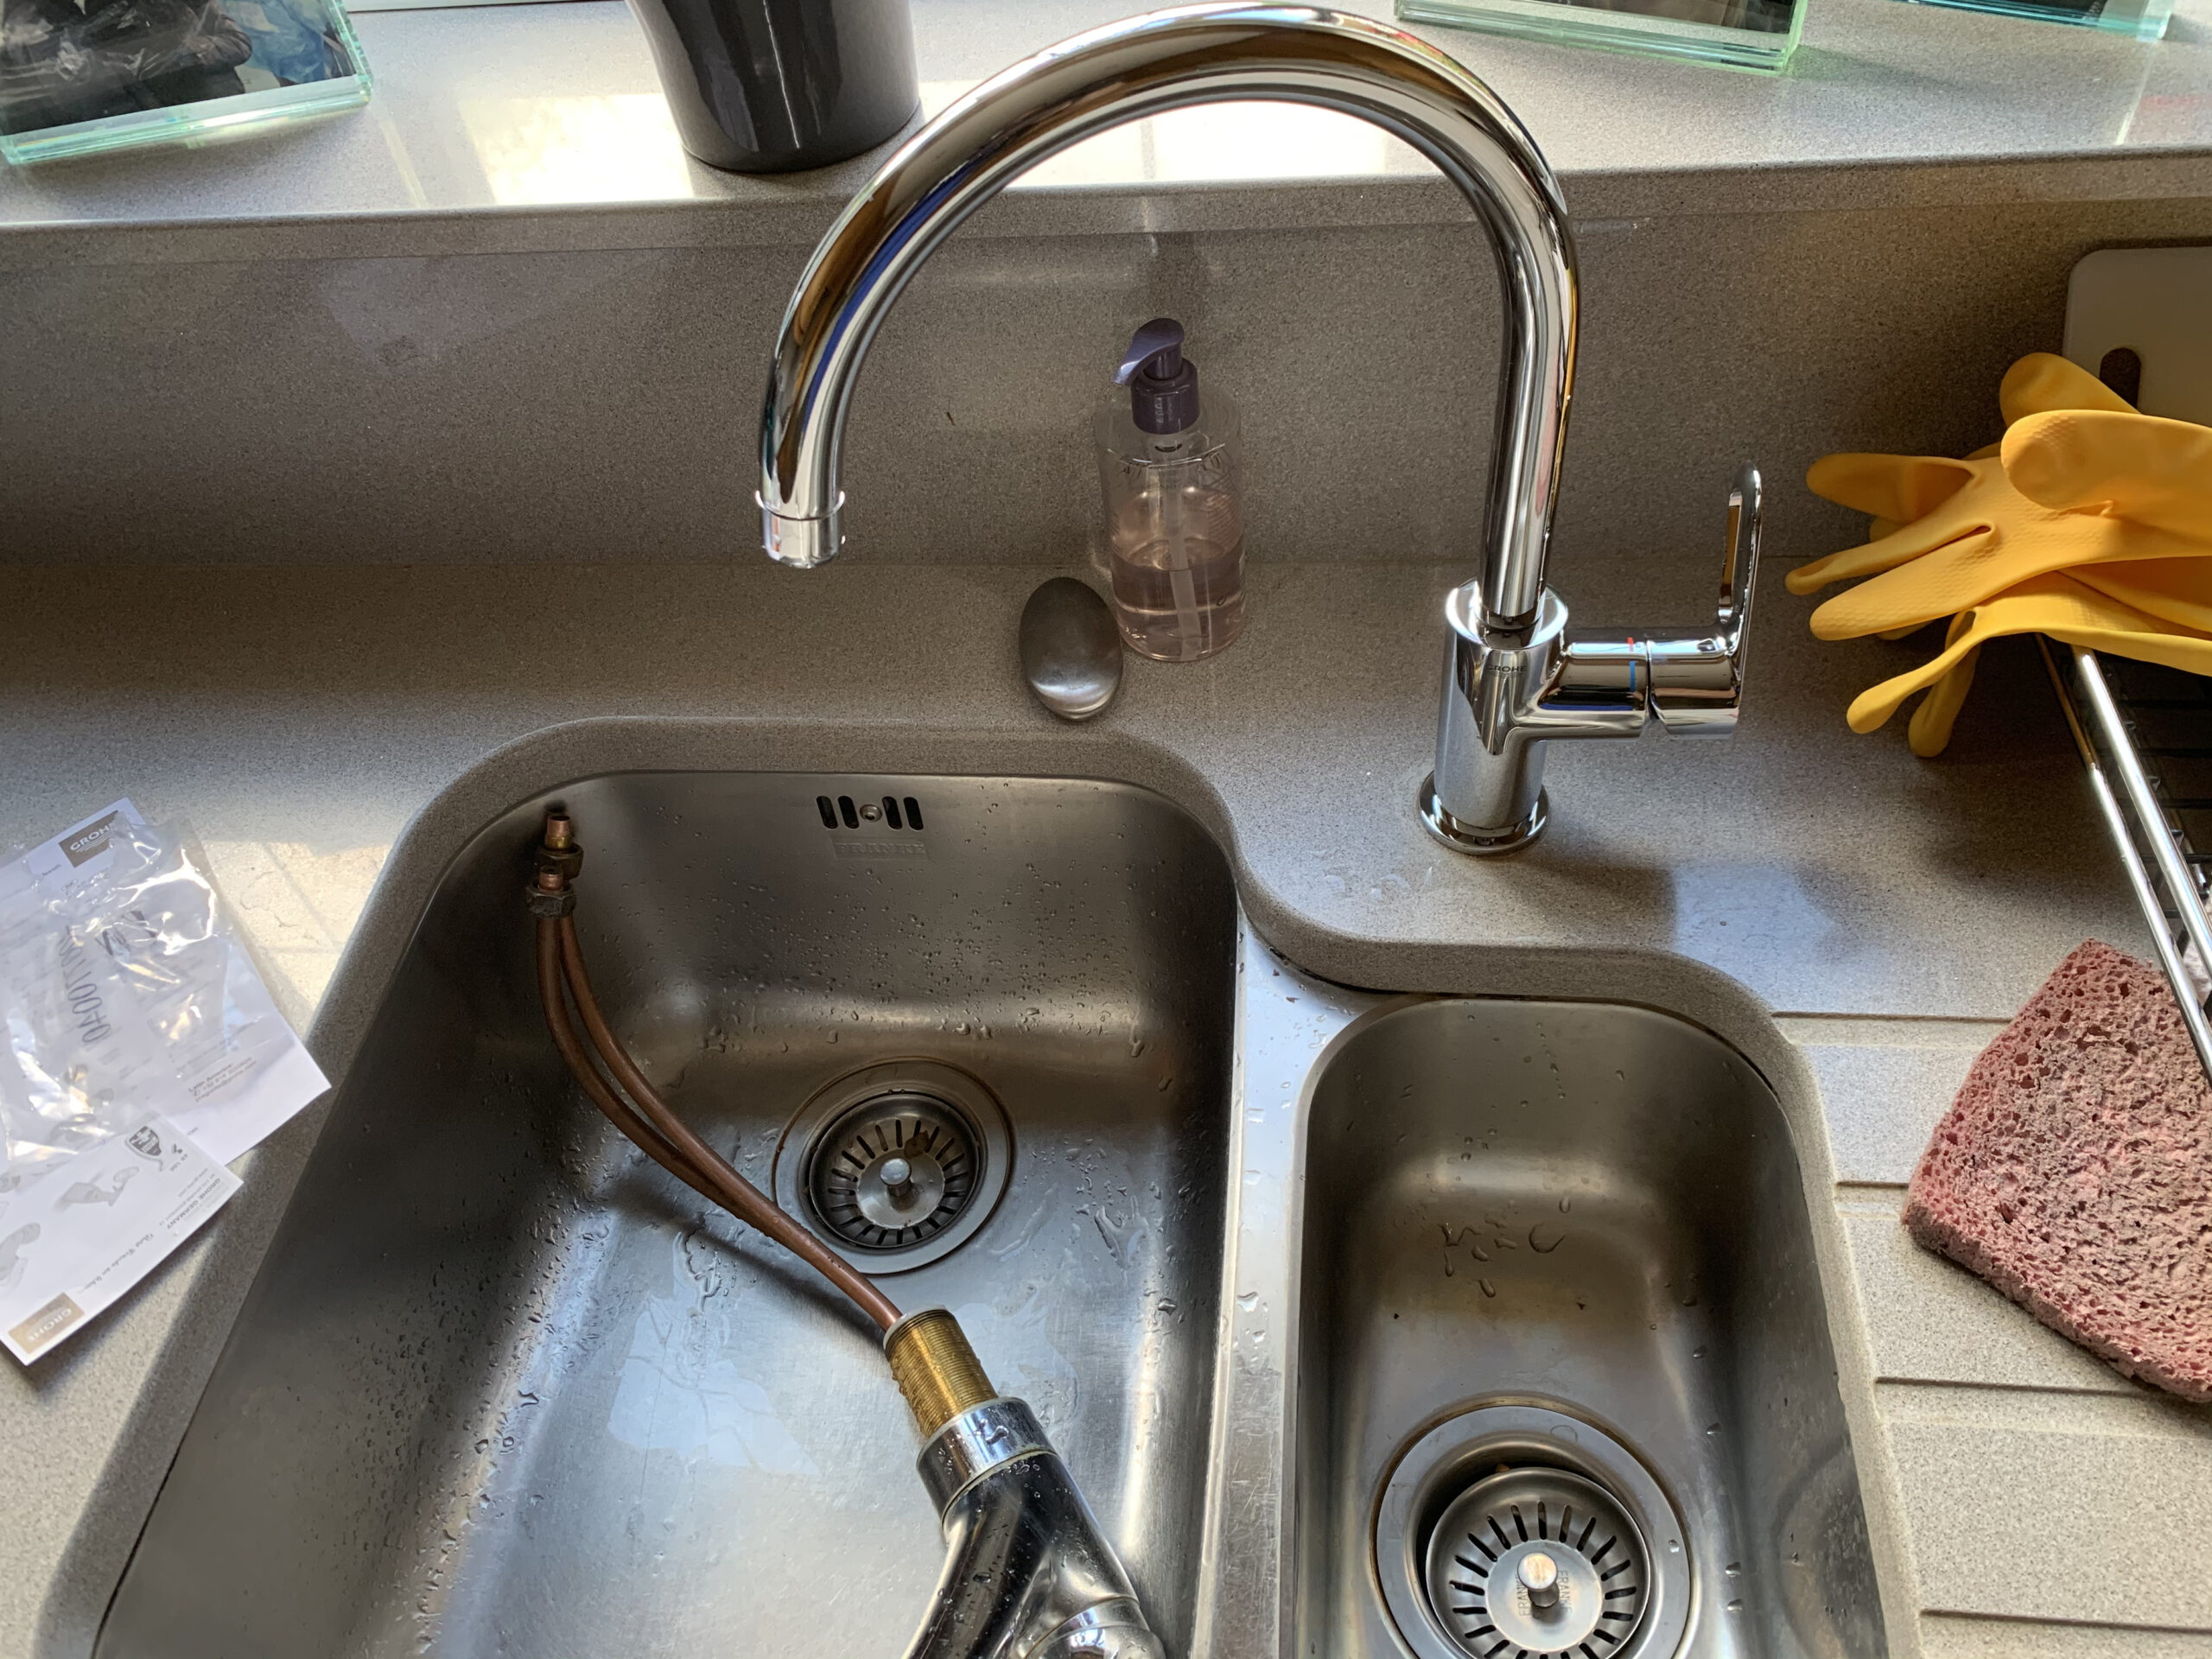 Grohe tap